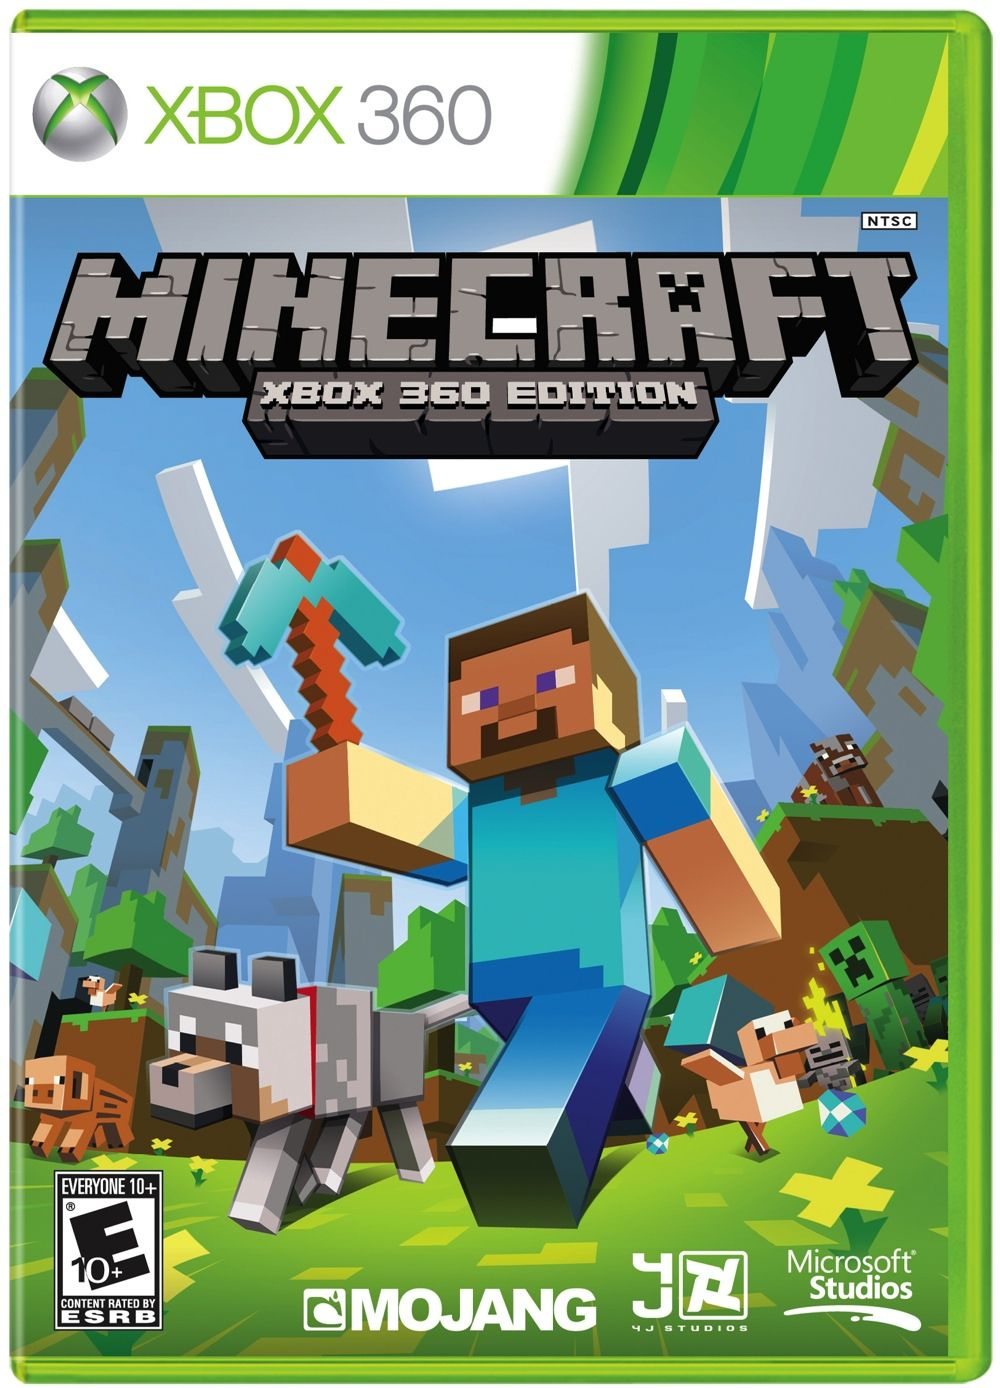 Minecraft For Xbox 360 Getting Physical Retail Edition Minecraft Games Fun Video Games Xbox 360 Games